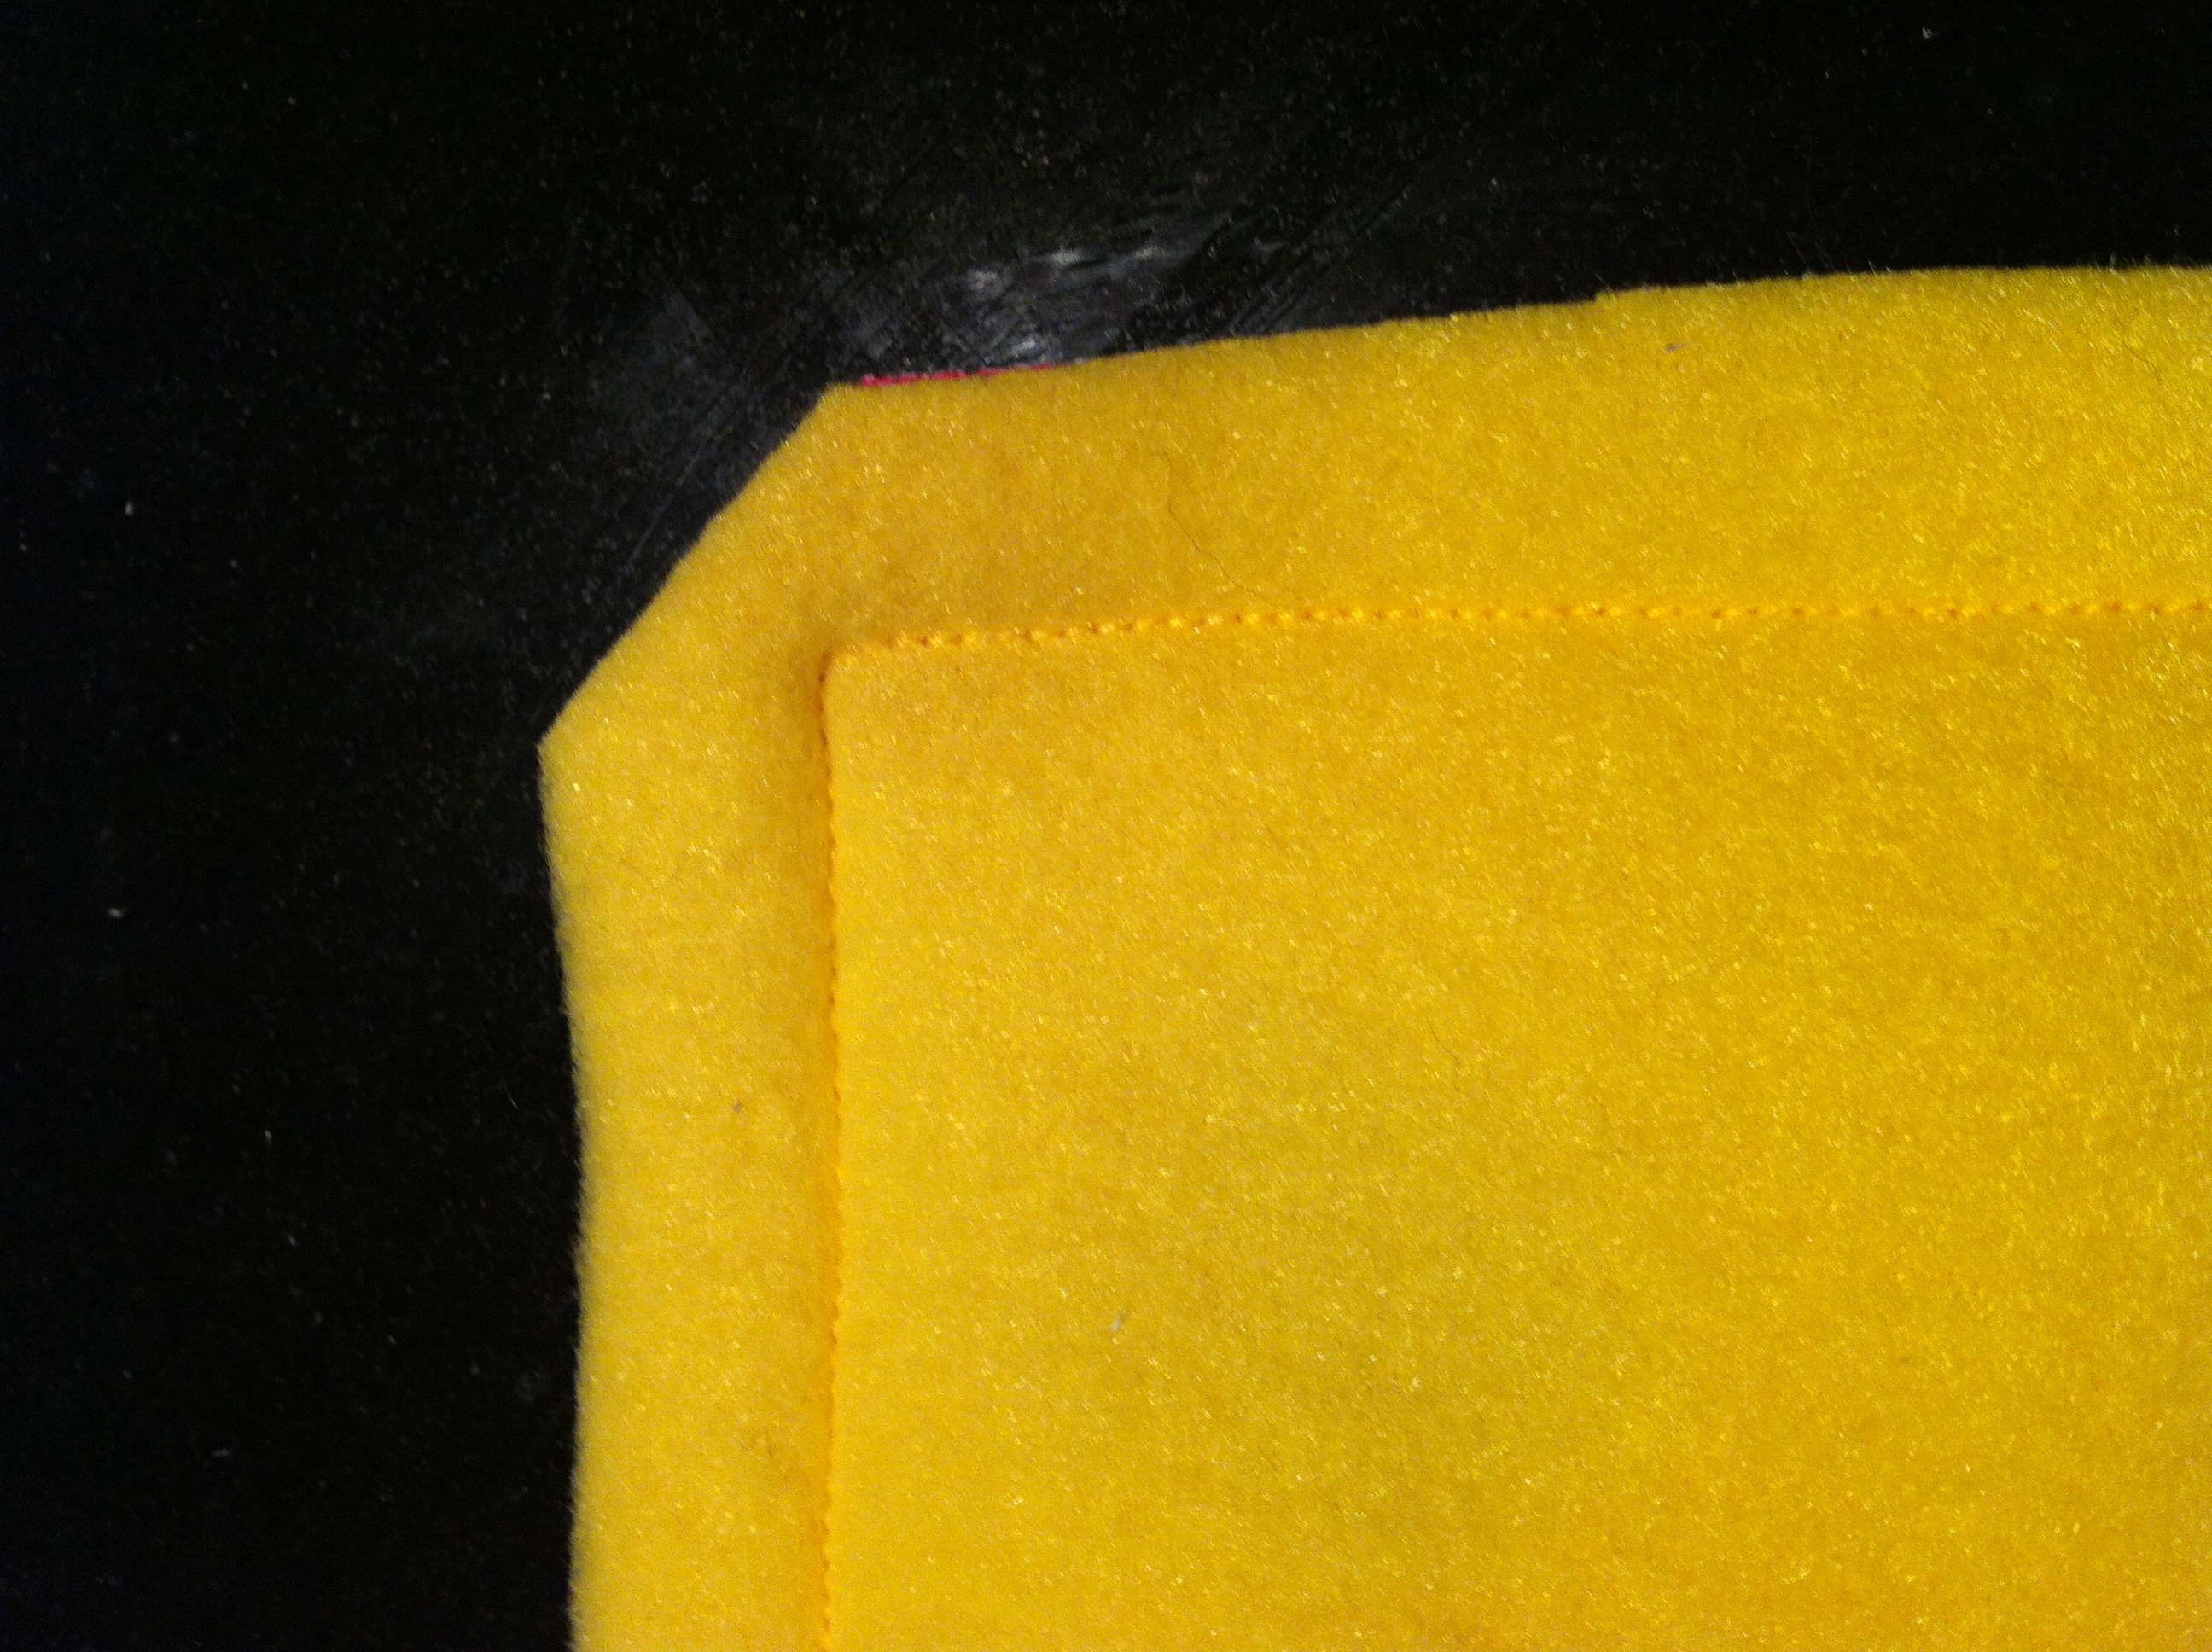 Sew three sides of the square together and cut the corners off (I always tidied up my edges)